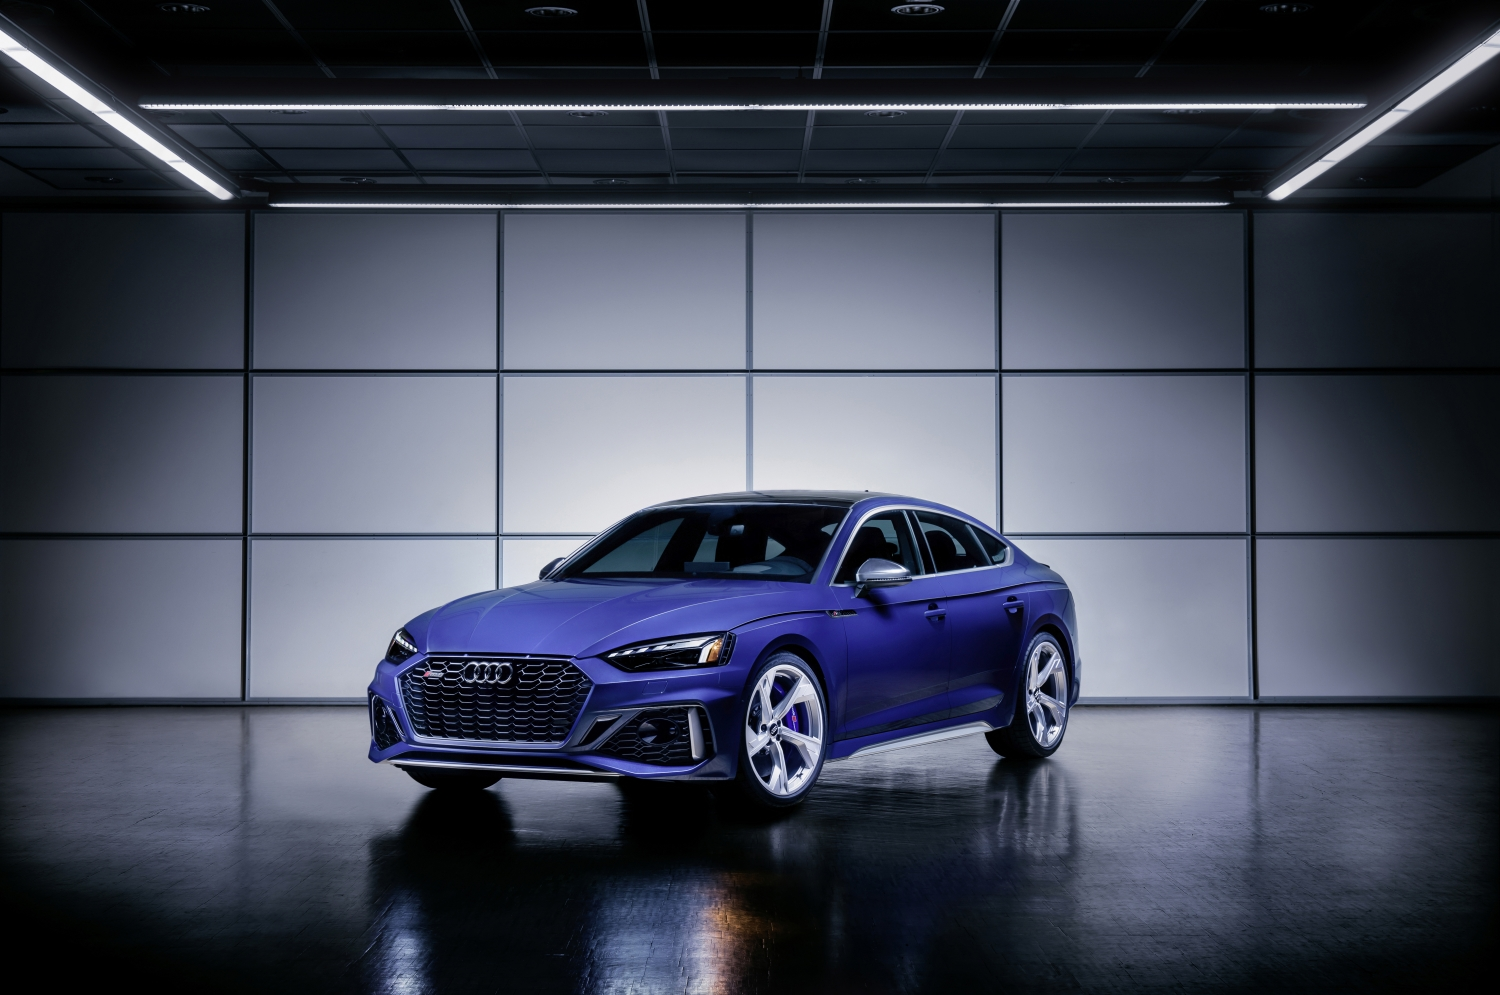 Small-7824-2021AudiRS5SportbackAscarilaunchedition